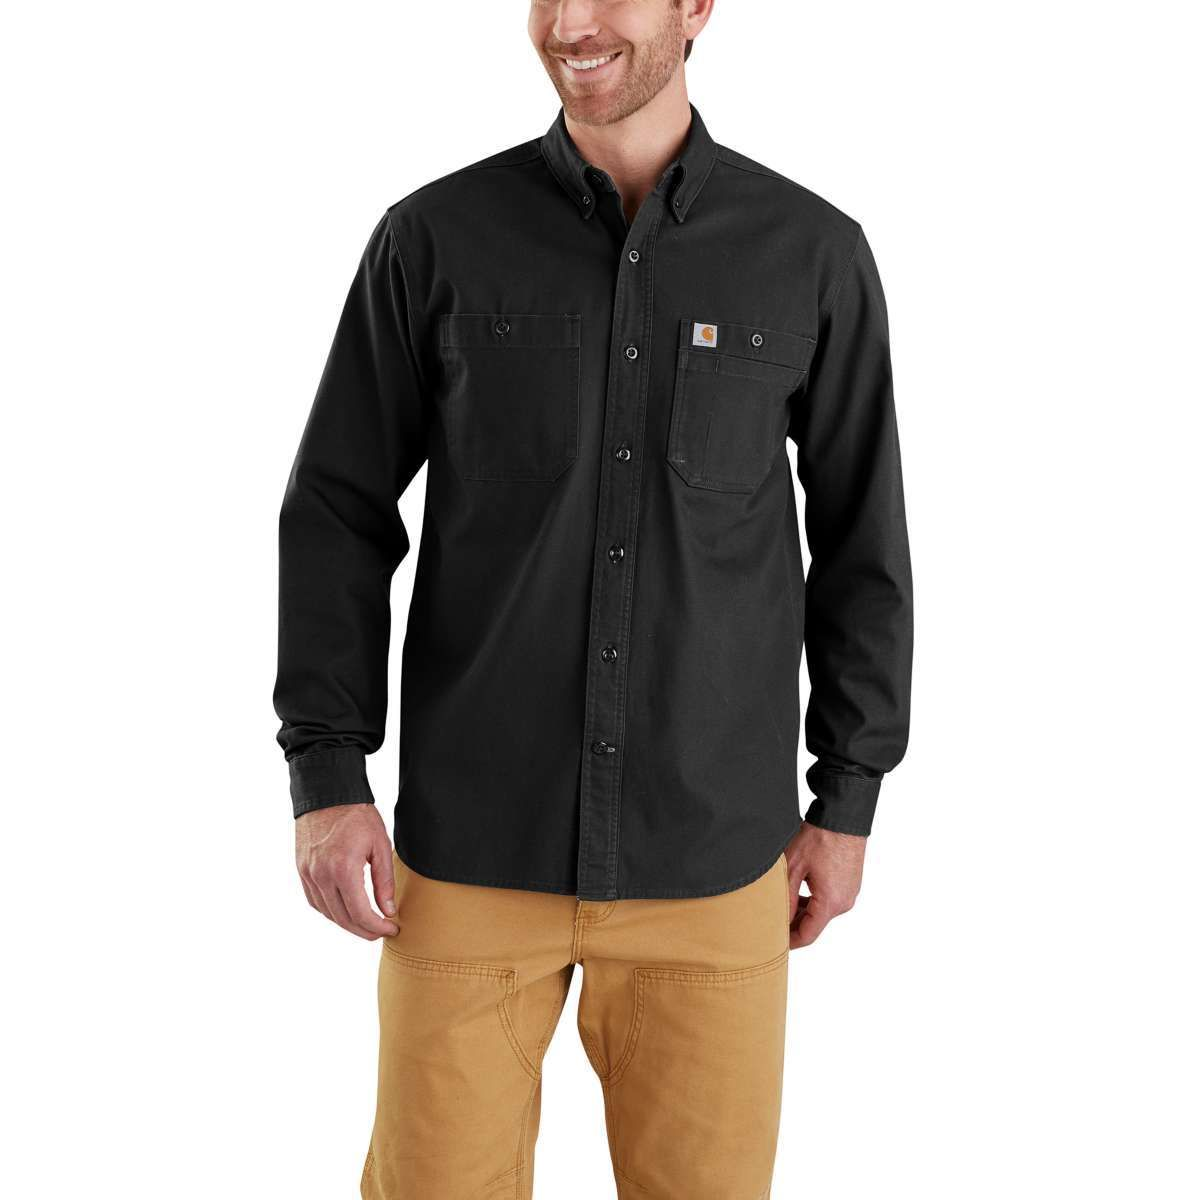 Carhartt Men's Rugged Flex Rigby Long-Sleeve Work Shirt - Black, XL